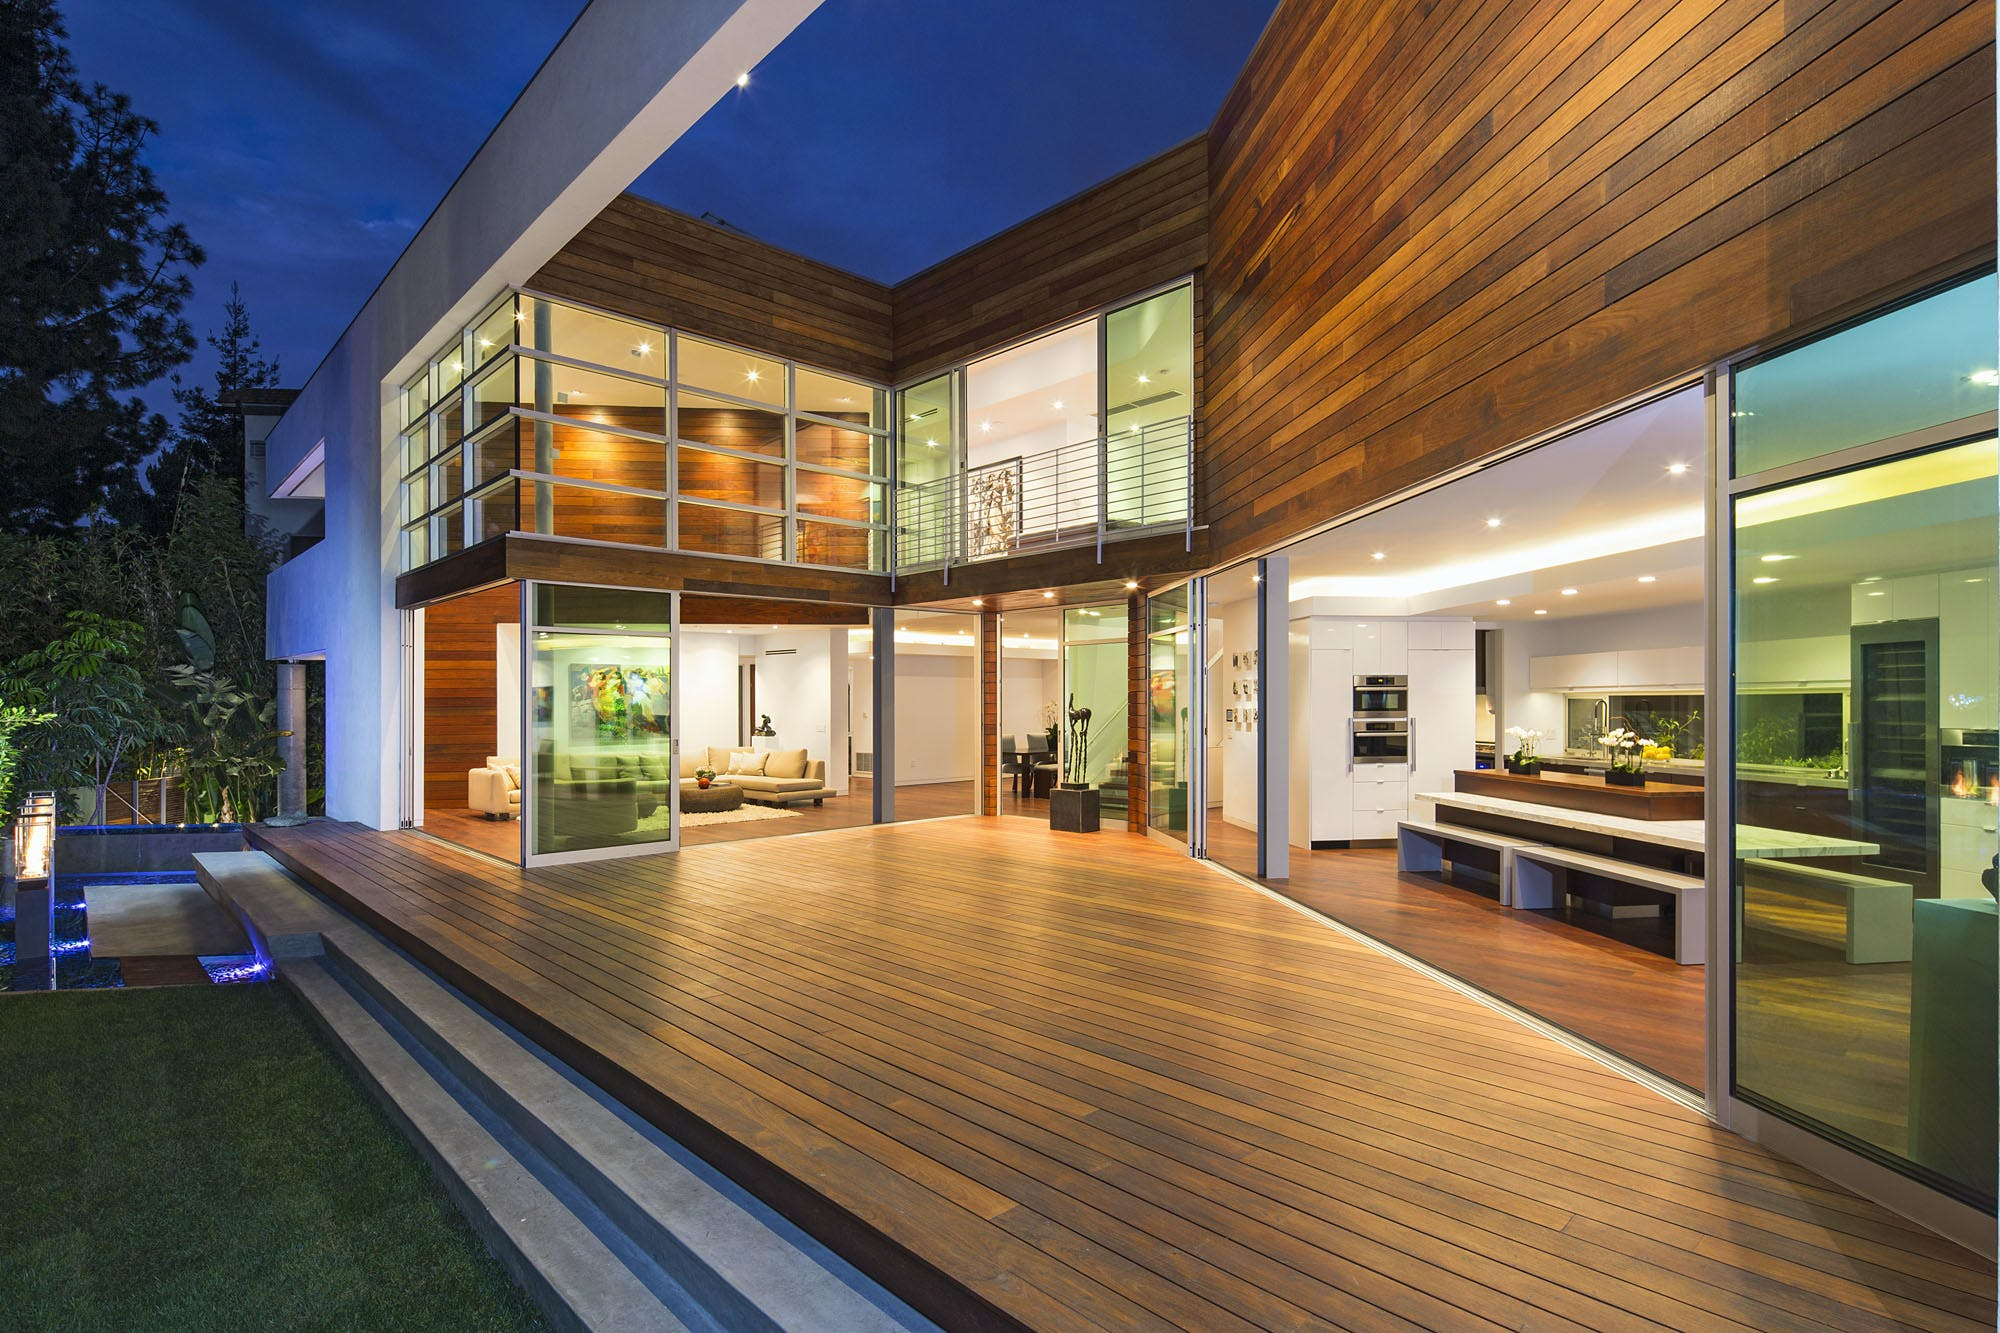 Green architecture van parys architecture design for Sustainable architecture firms